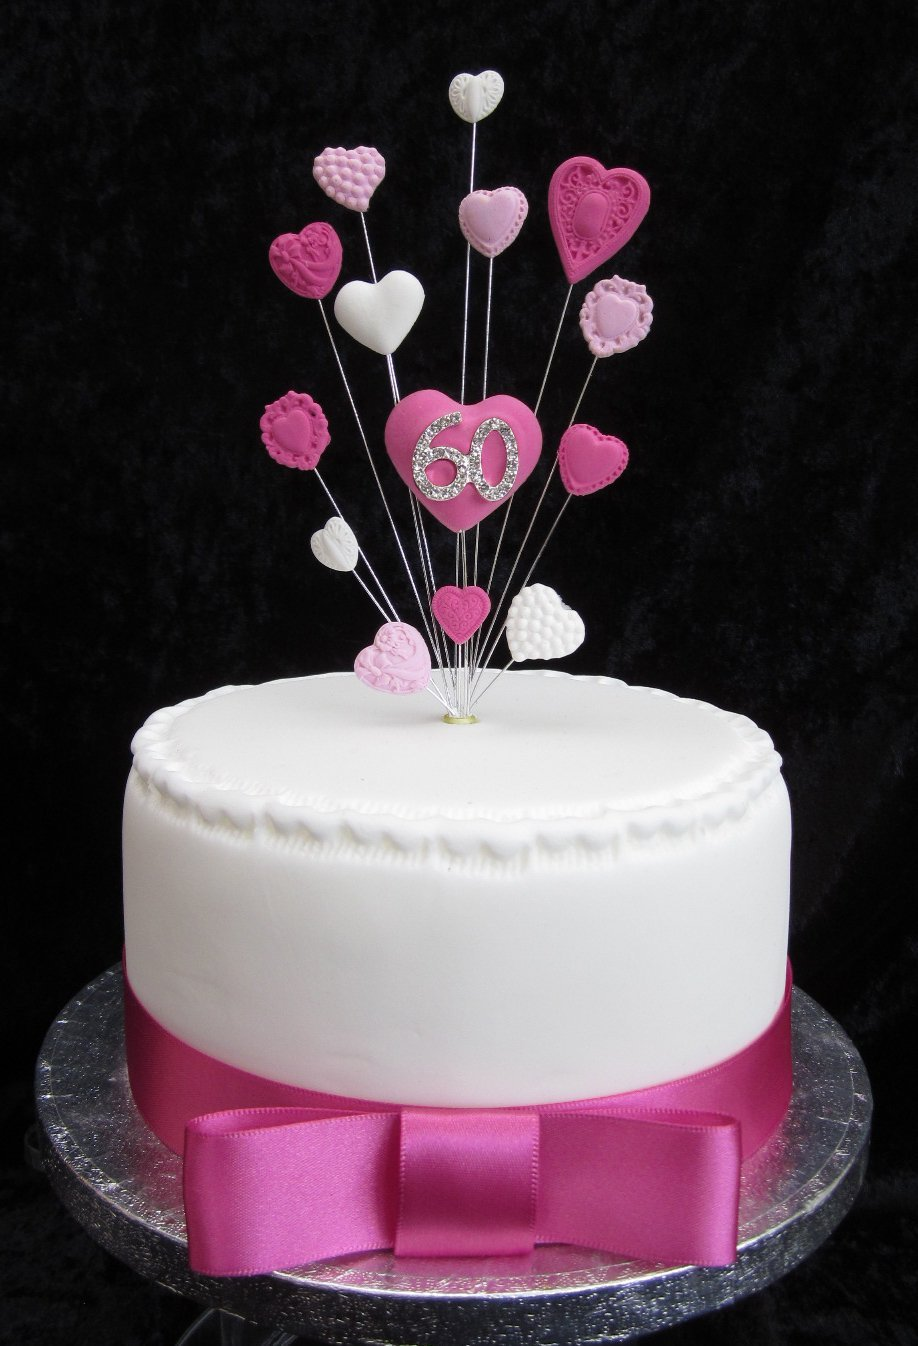 Astounding 60Th Birthday Cake Topper Pinks And White Hearts Ideal For A Small Funny Birthday Cards Online Elaedamsfinfo